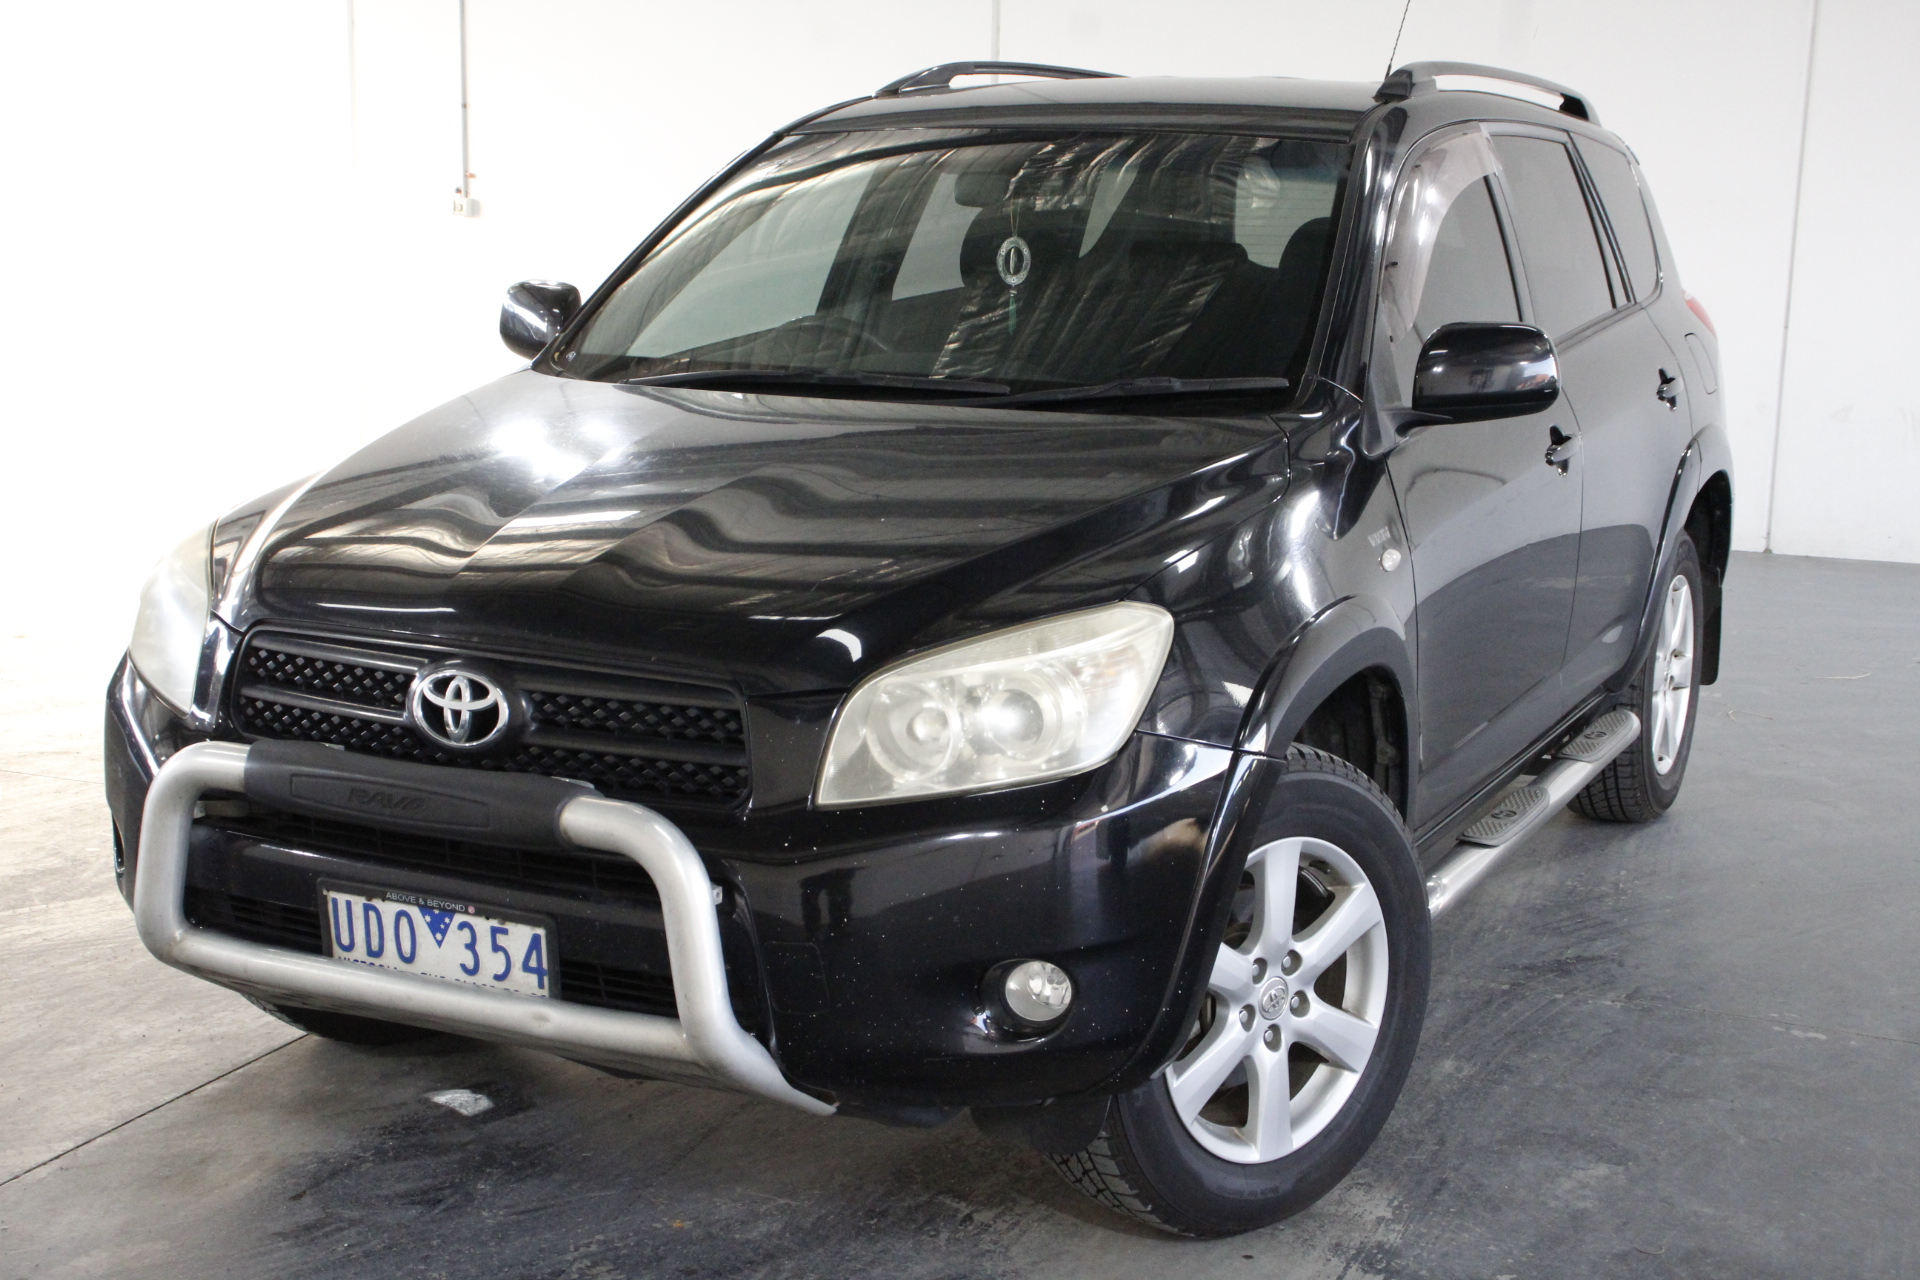 2006 Toyota Rav 4 Cruiser (4x4) Manual Wagon